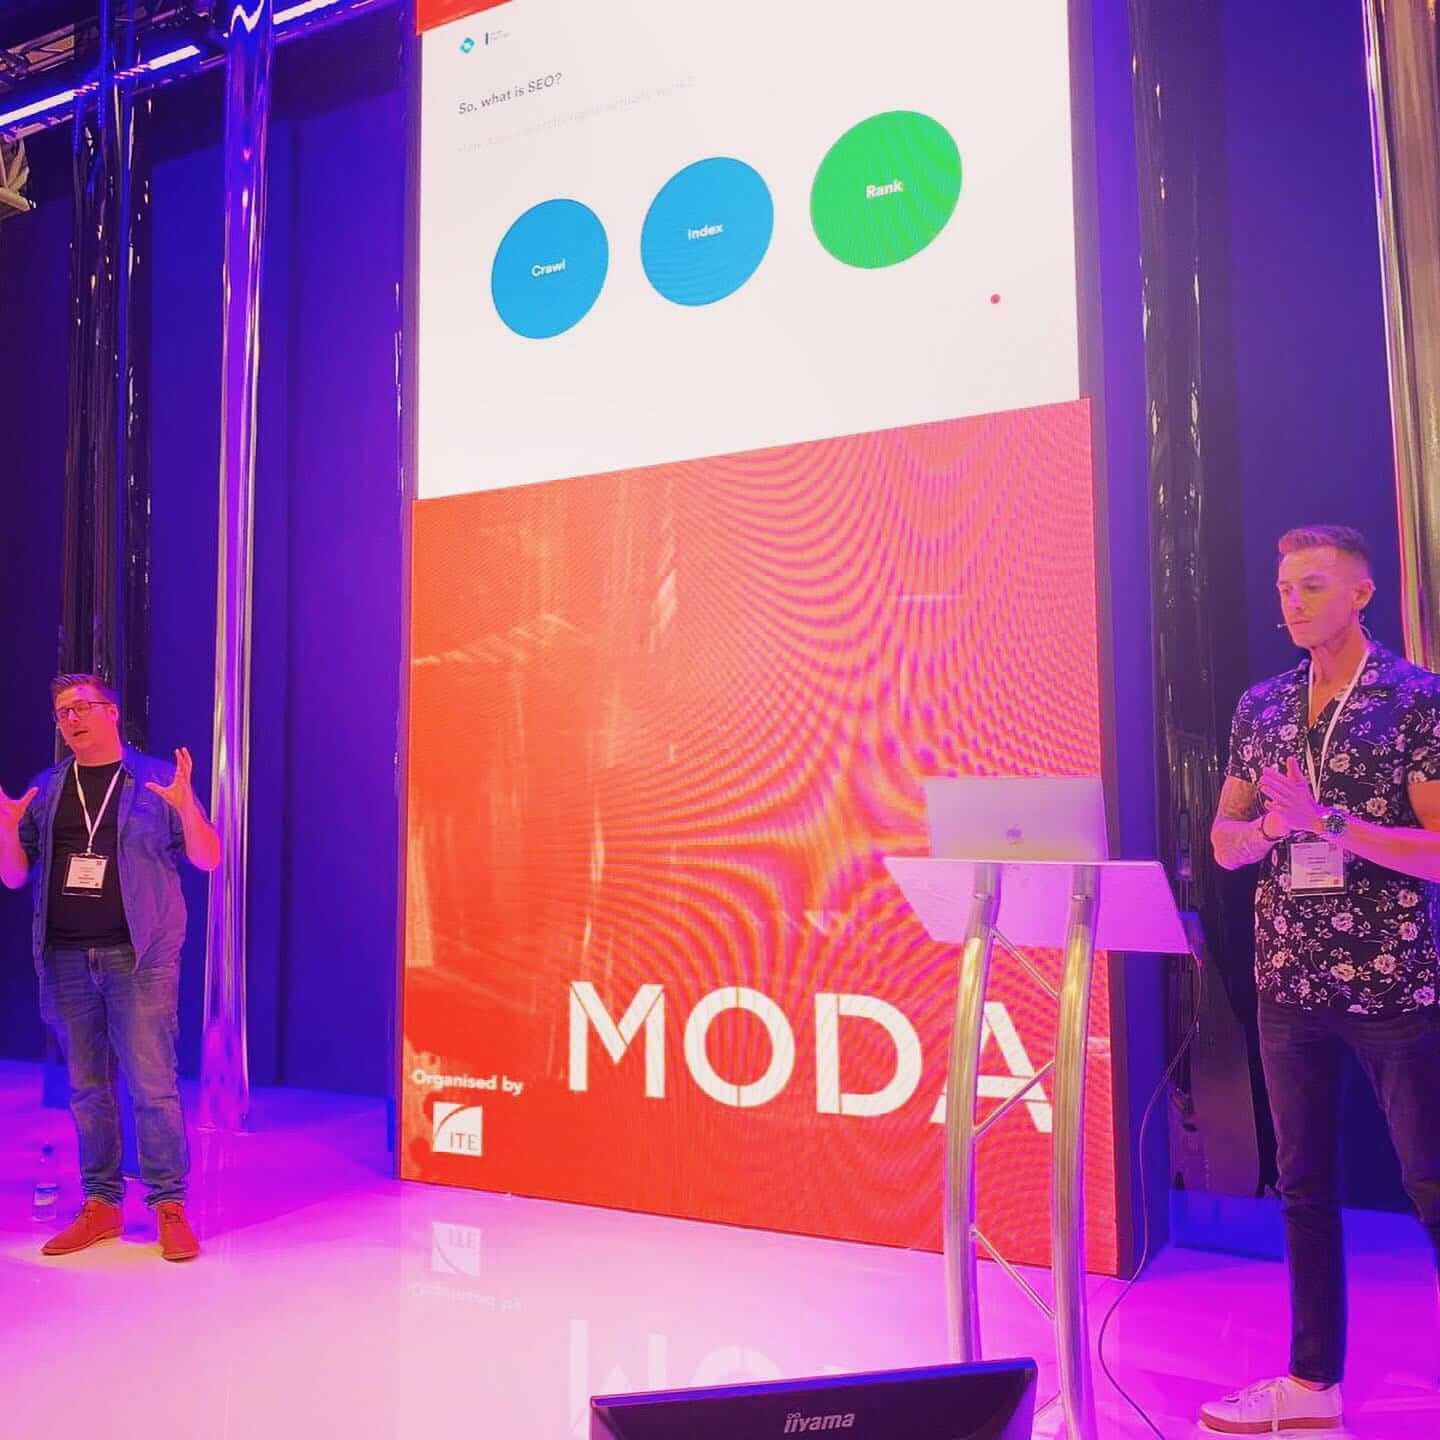 Frogspark speak at Moda, NEC Birmingham